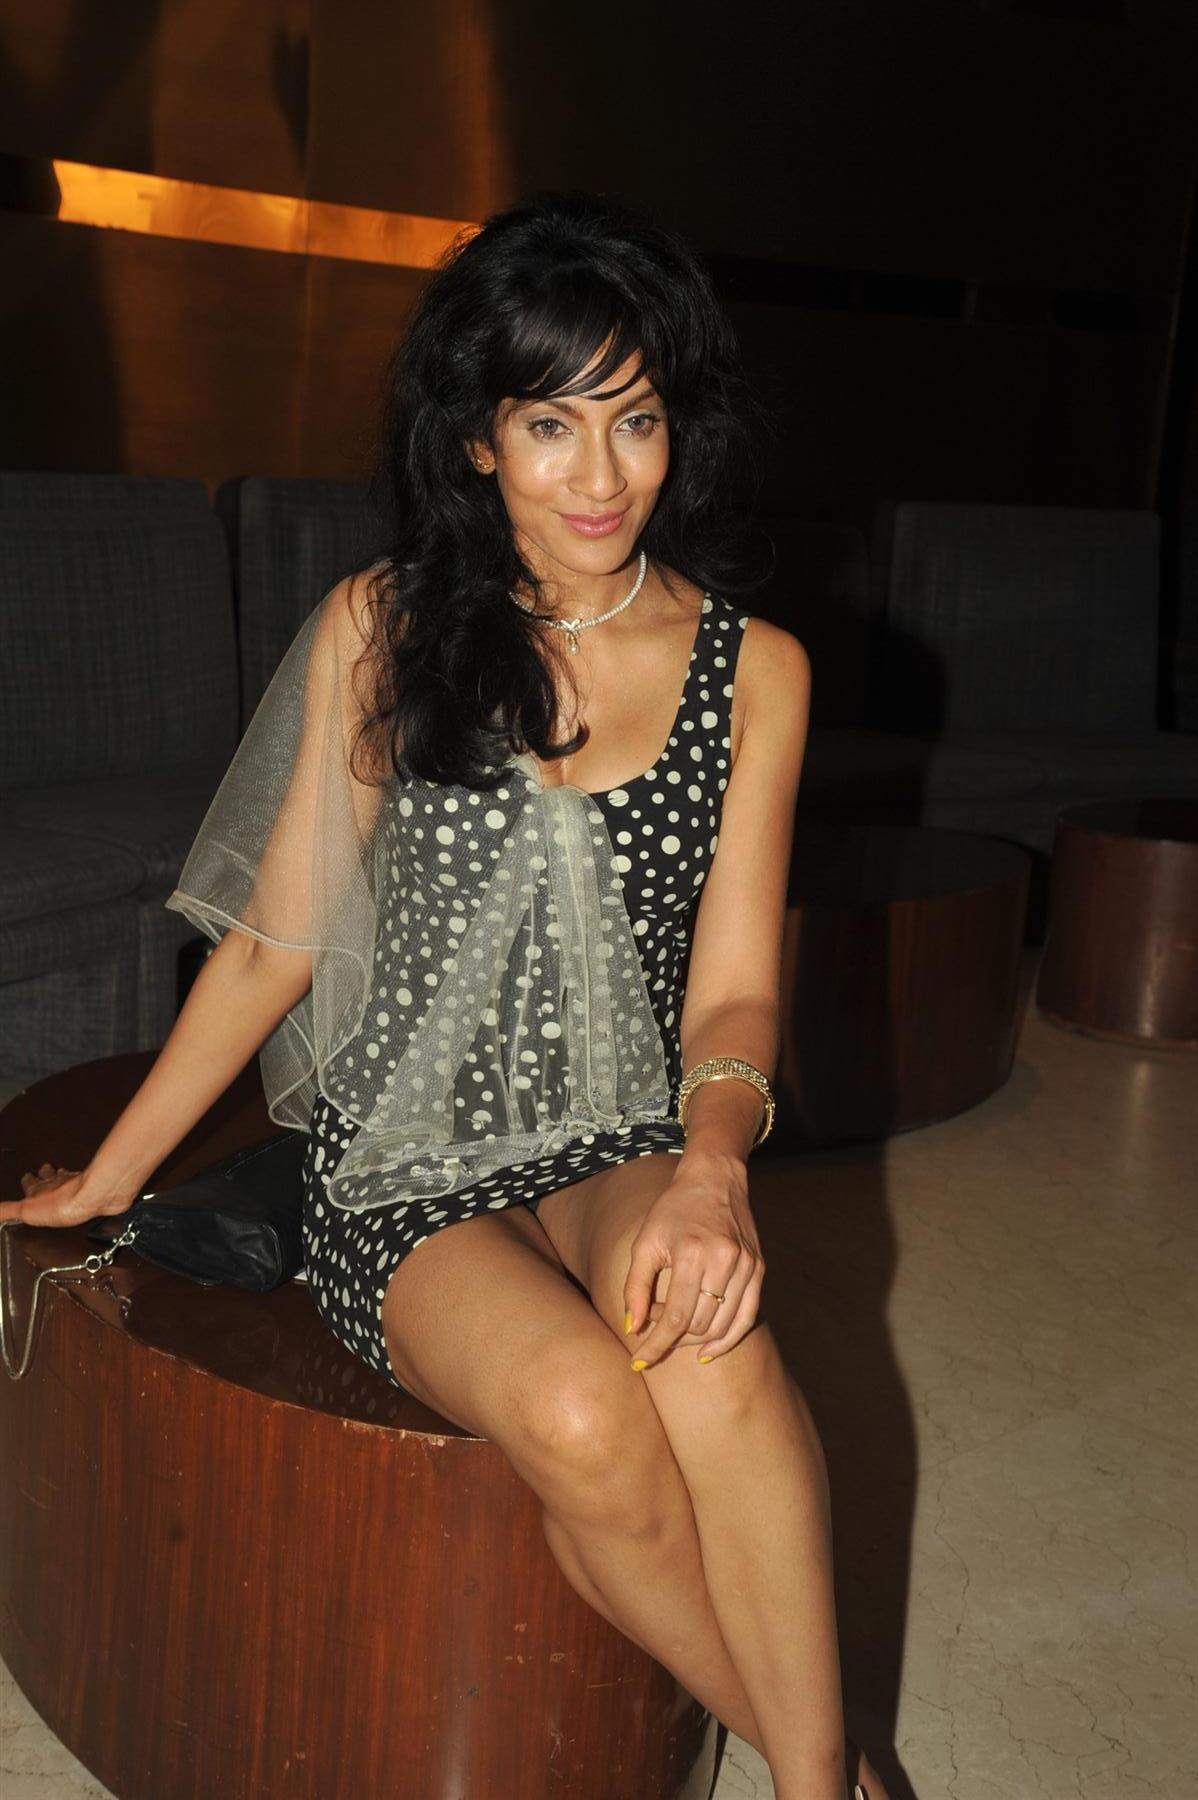 Sri Lankan model Chandi Pereira at Locations Awards 2012 in Mumbai 1